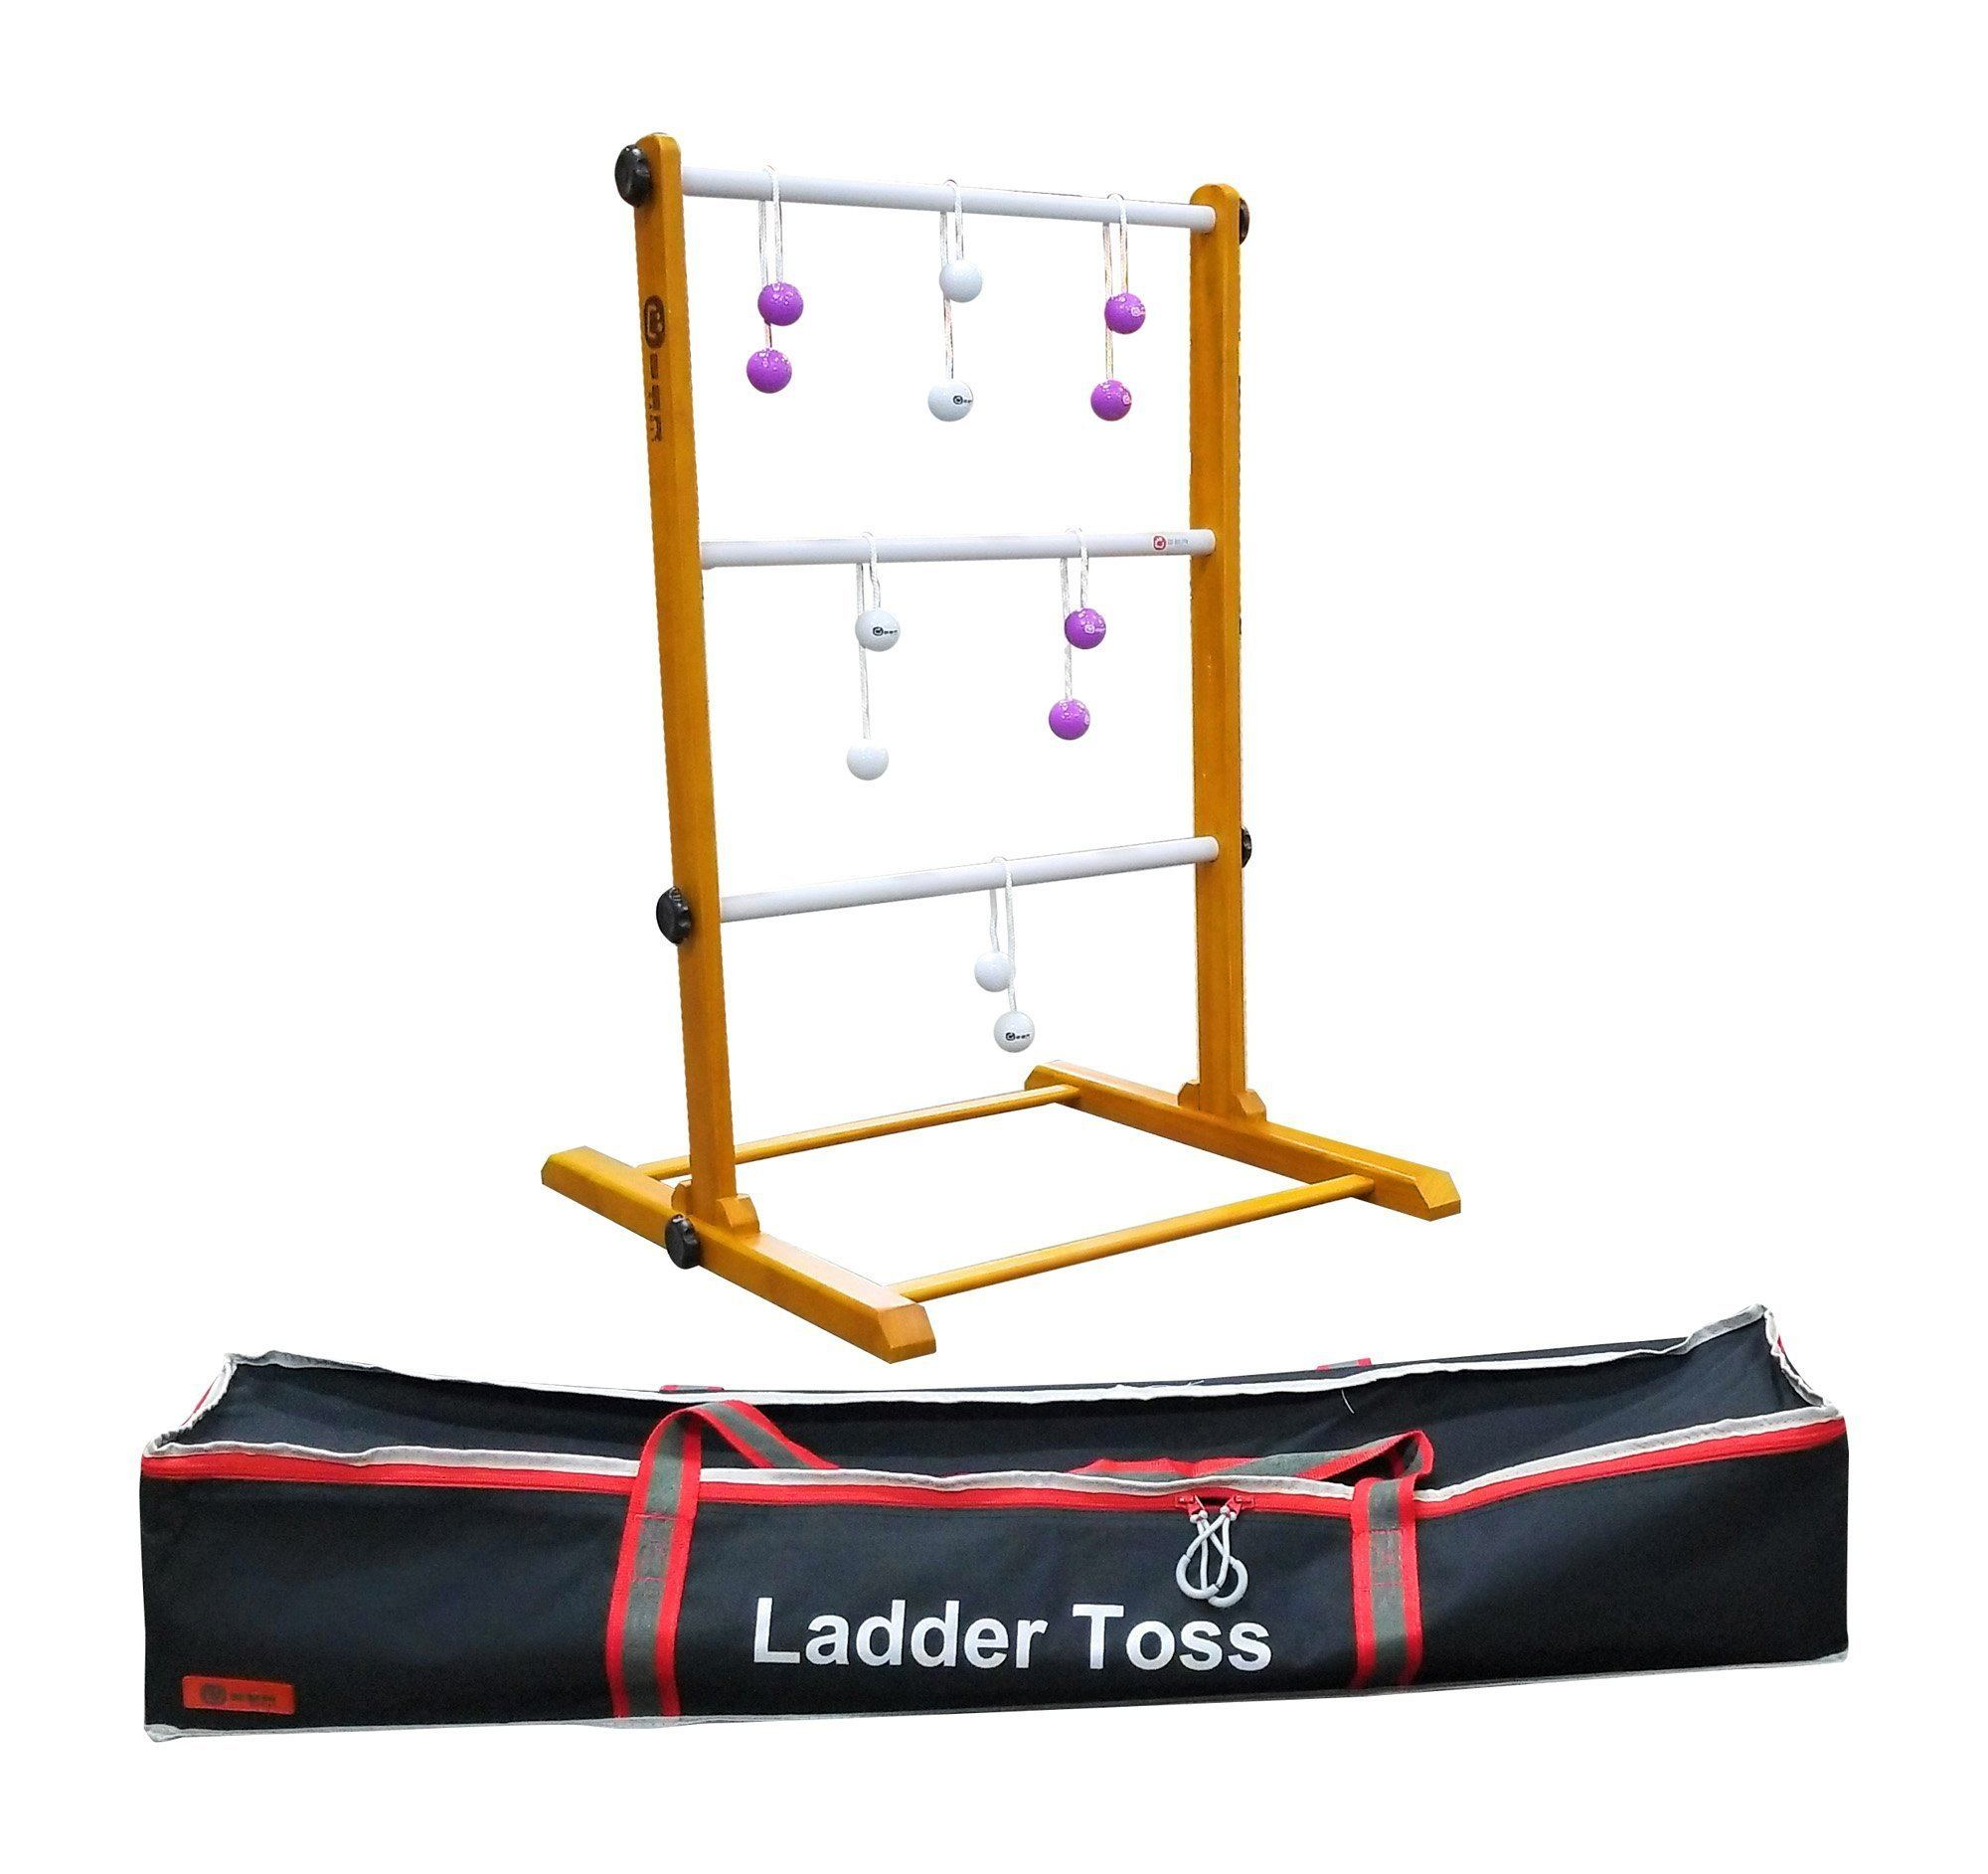 Ladder Toss Sets and Accessories